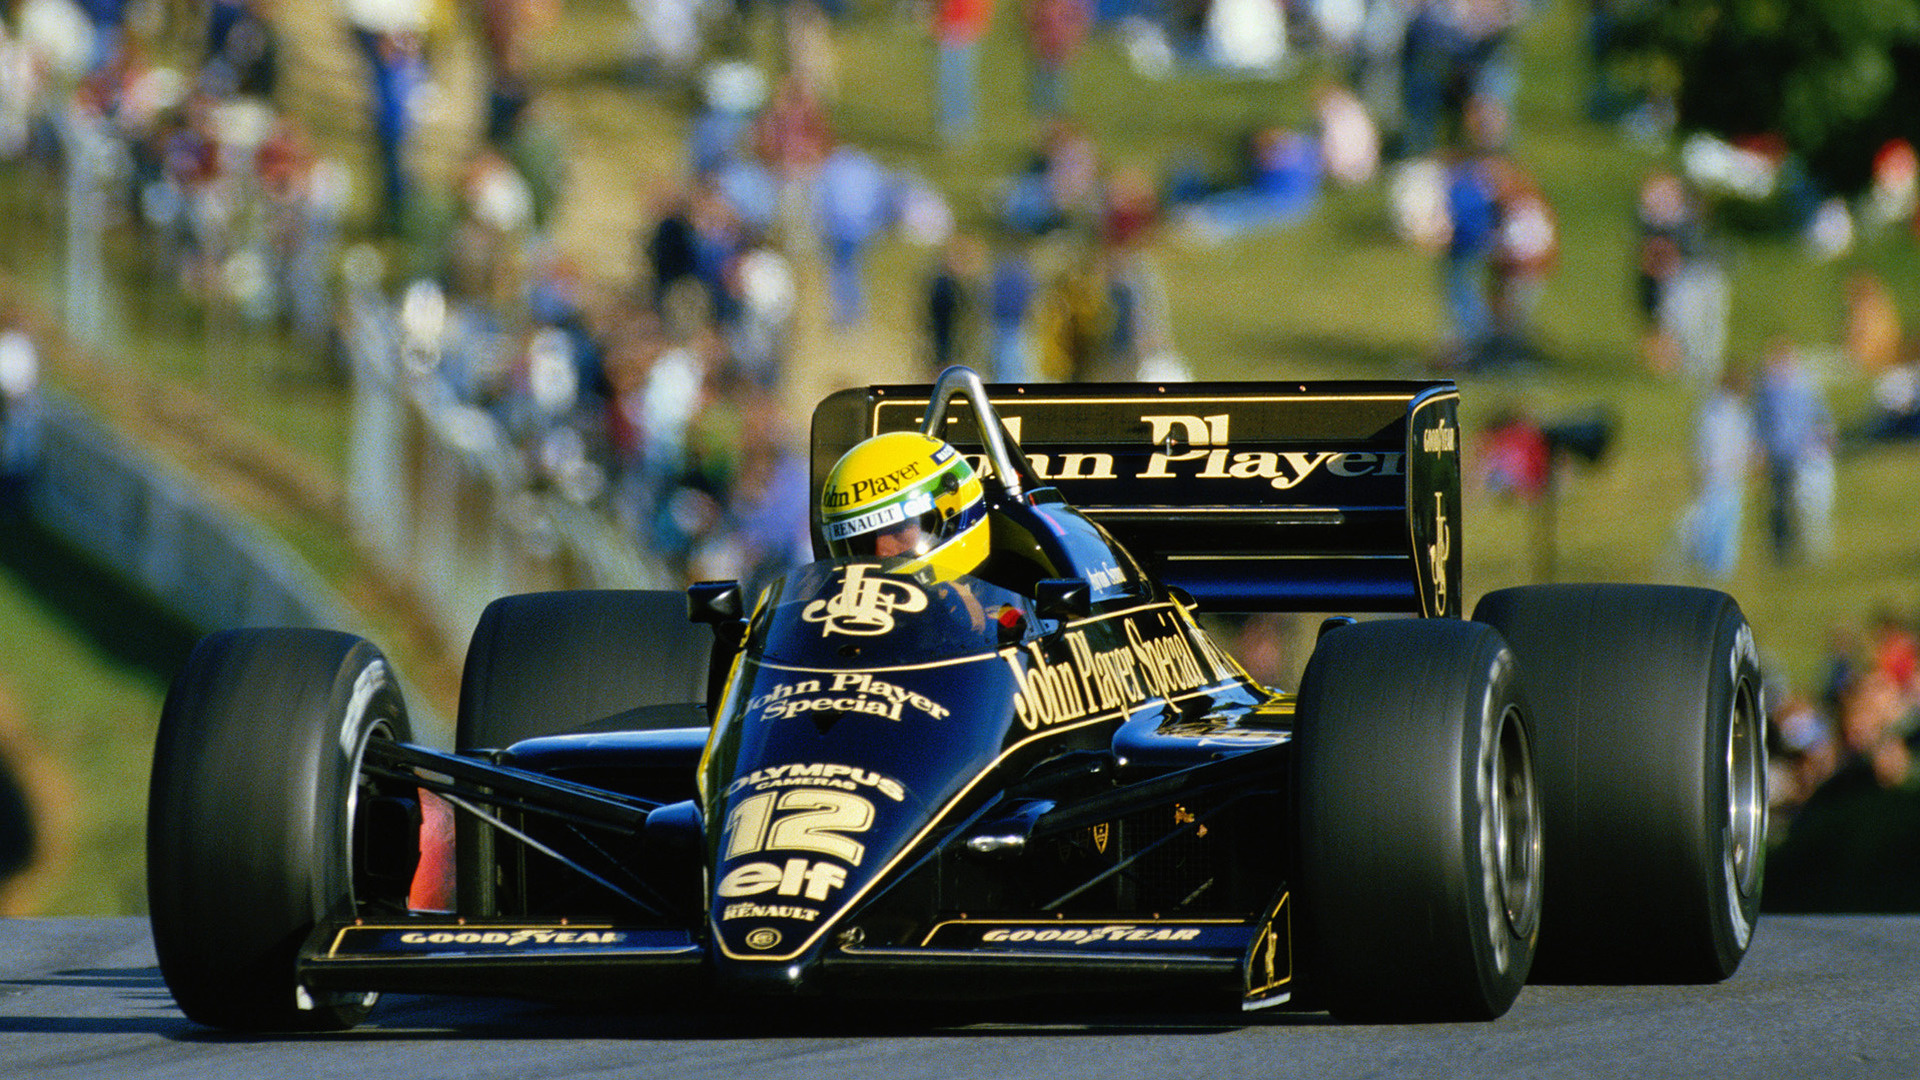 1985 Lotus 97T - Wallpapers and HD Images | Car Pixel